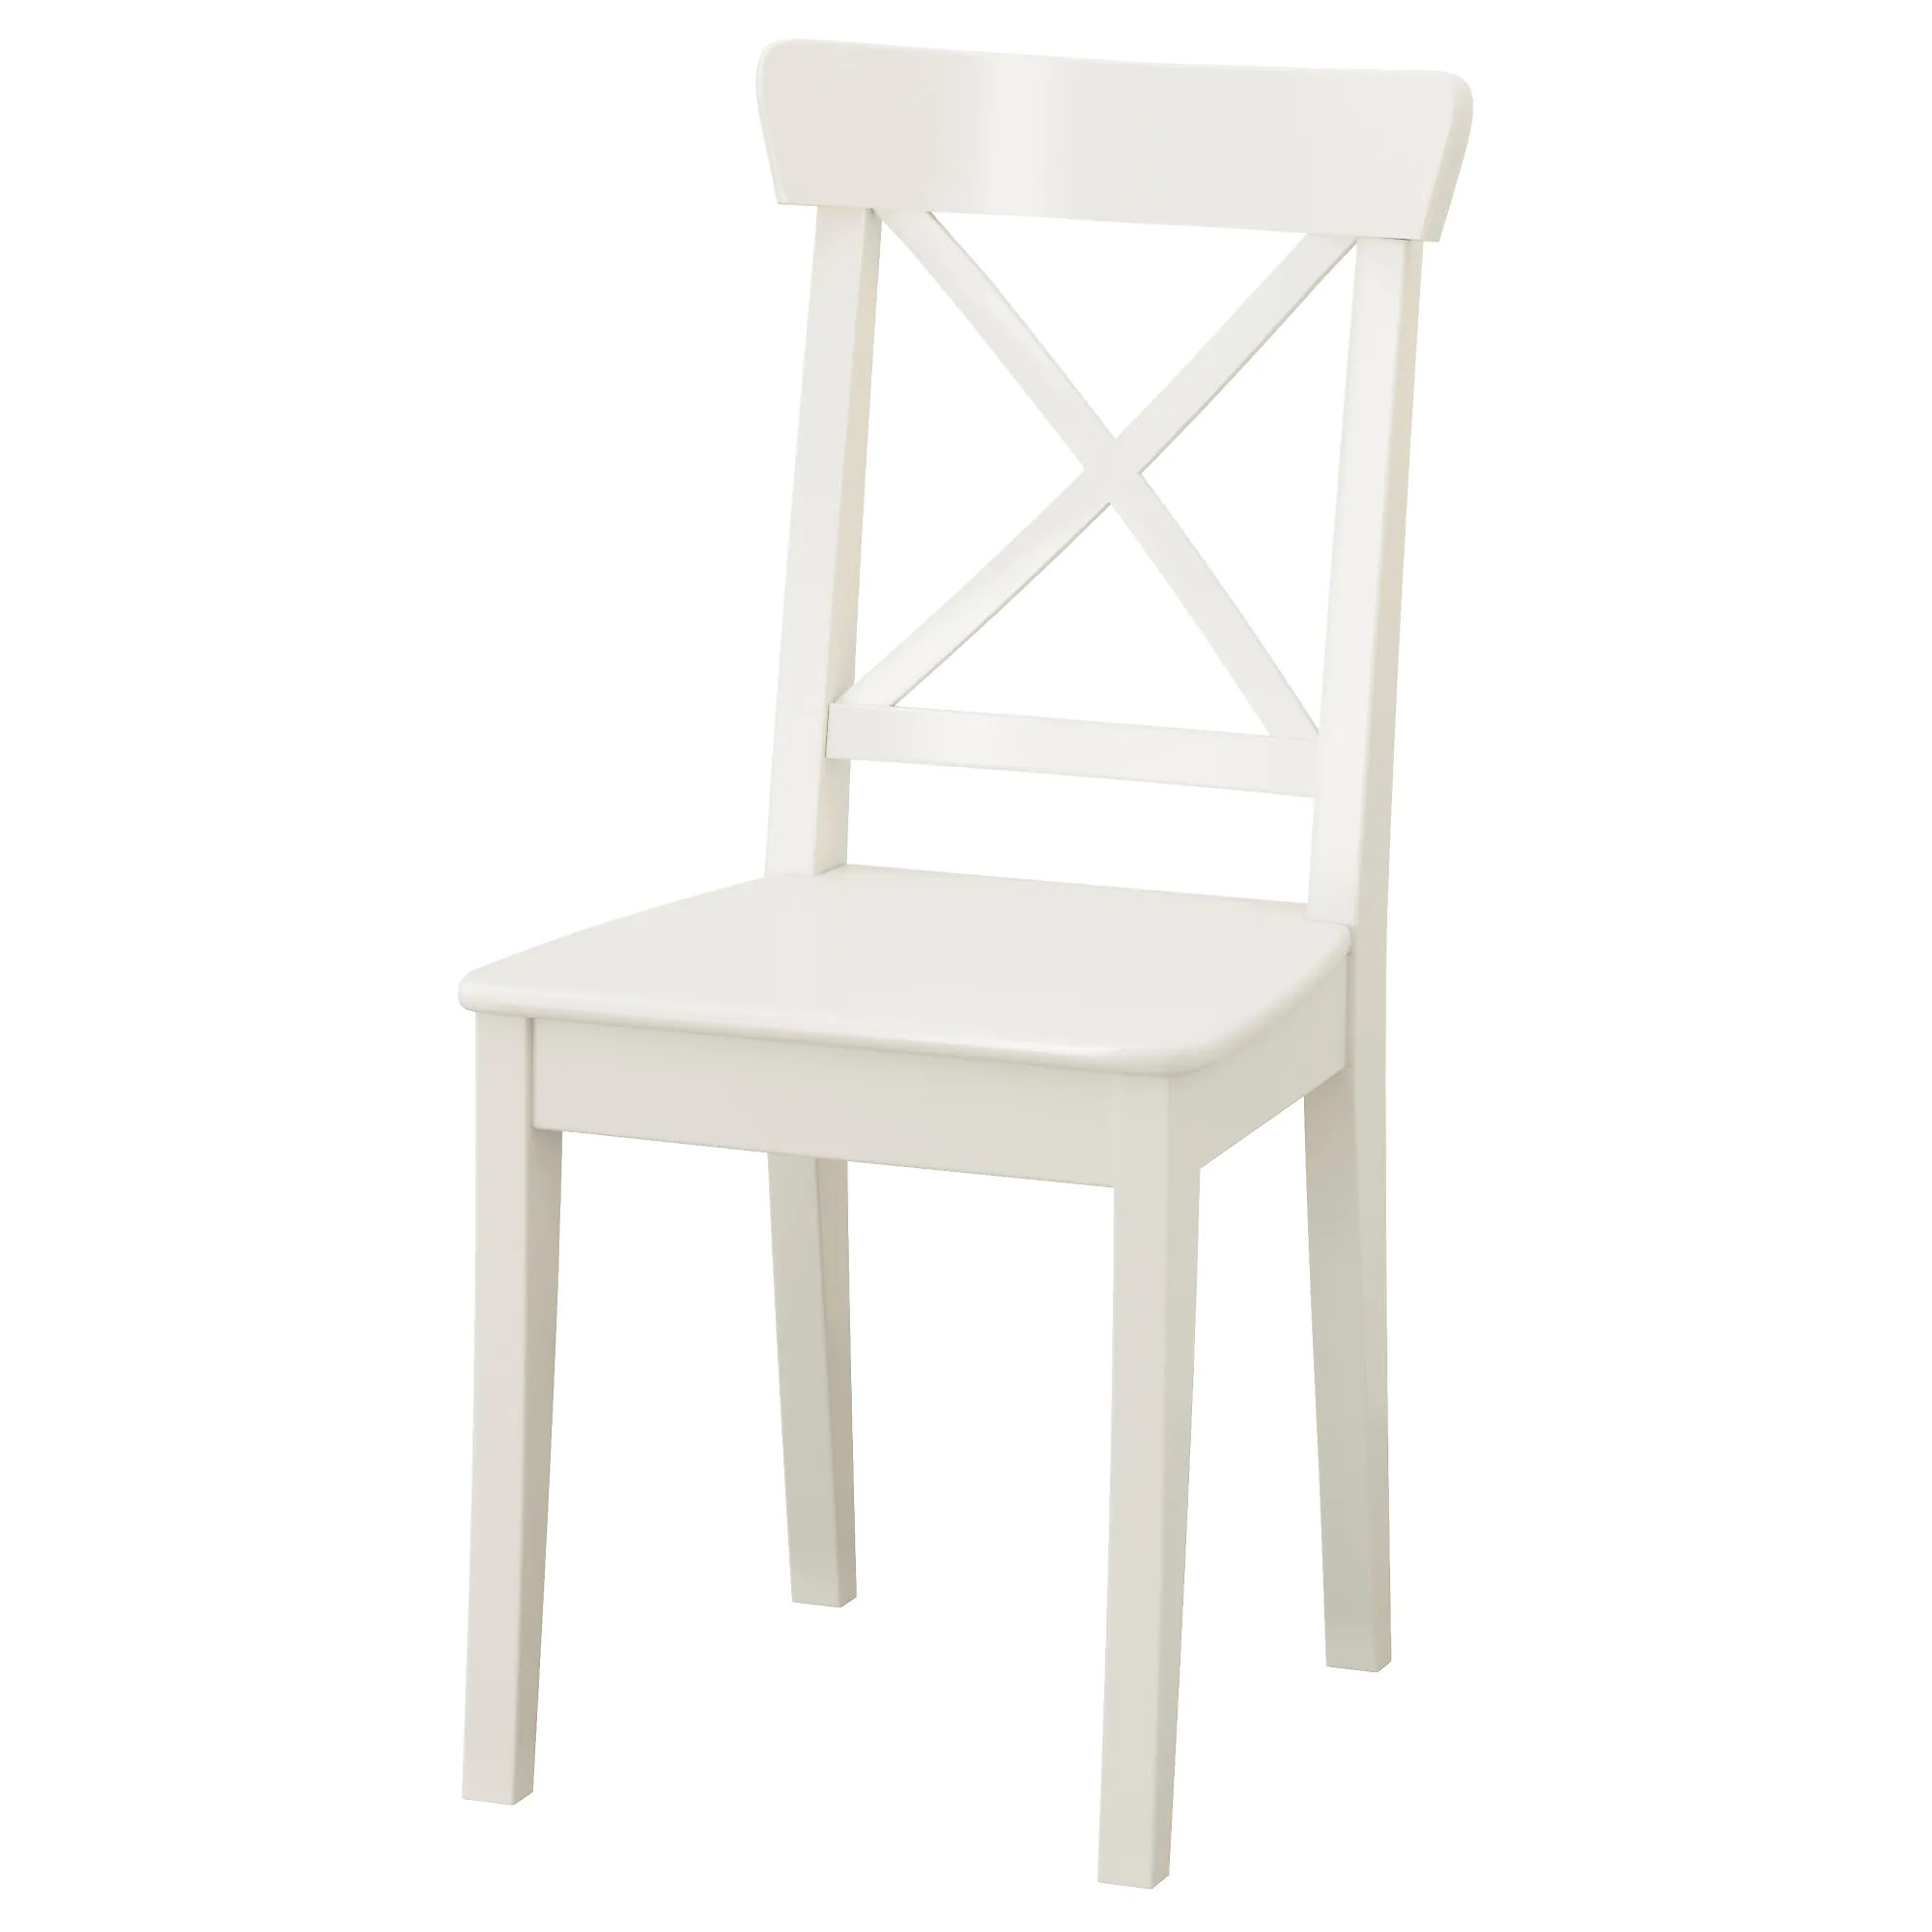 ikea wooden chairs high leg recliner chair ingolf inter systems b v 1999 2018 privacy policy responsible disclosure